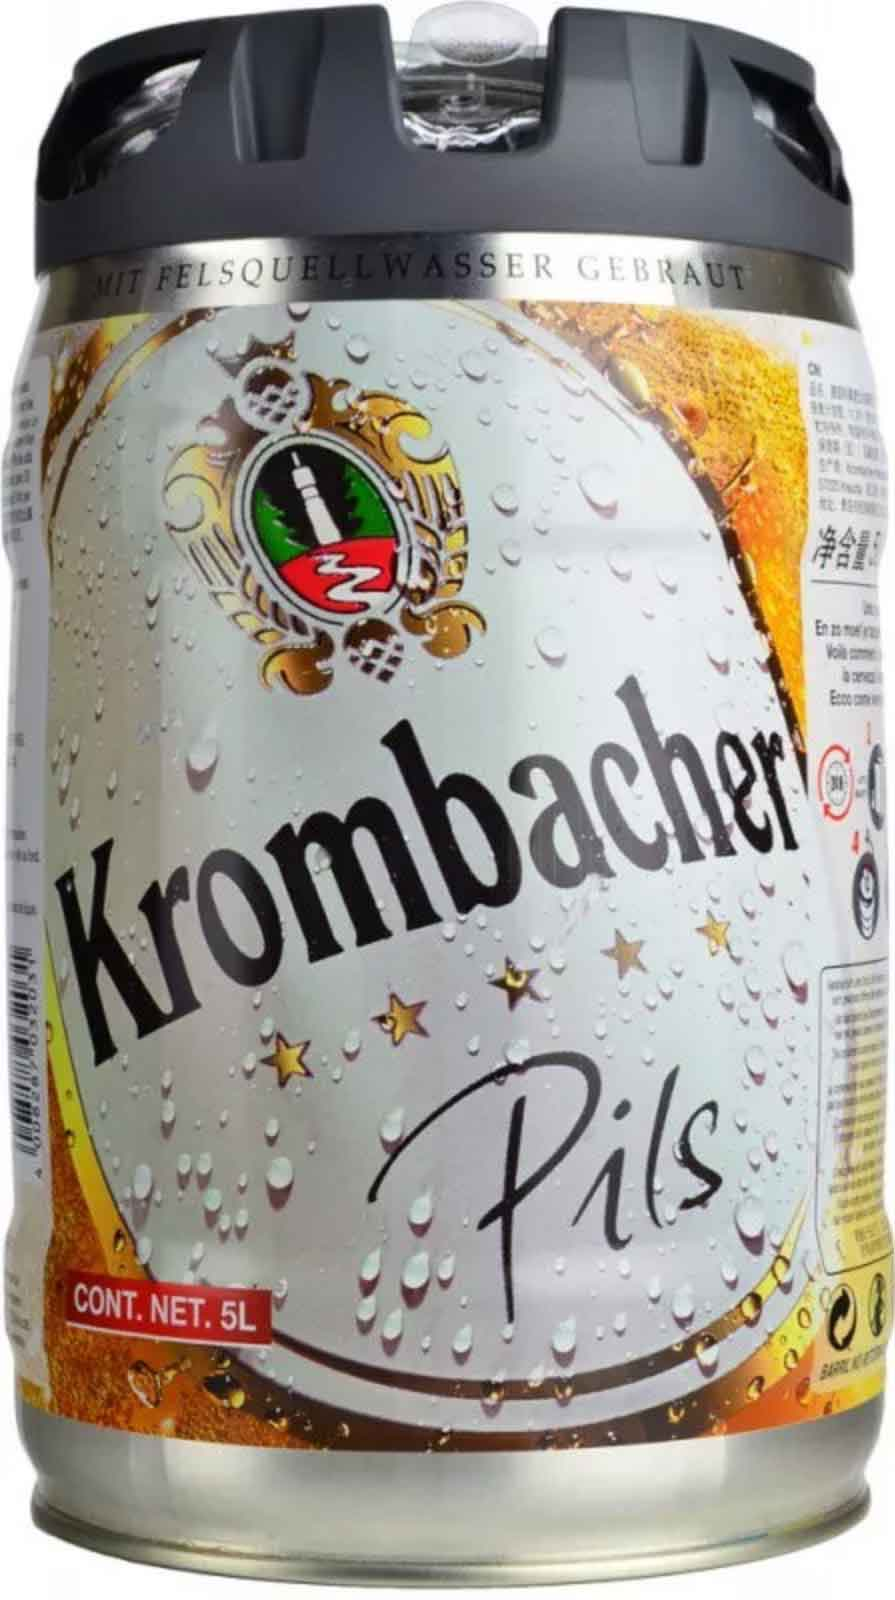 Martins Off Licence Krombacher 5Litre Keg